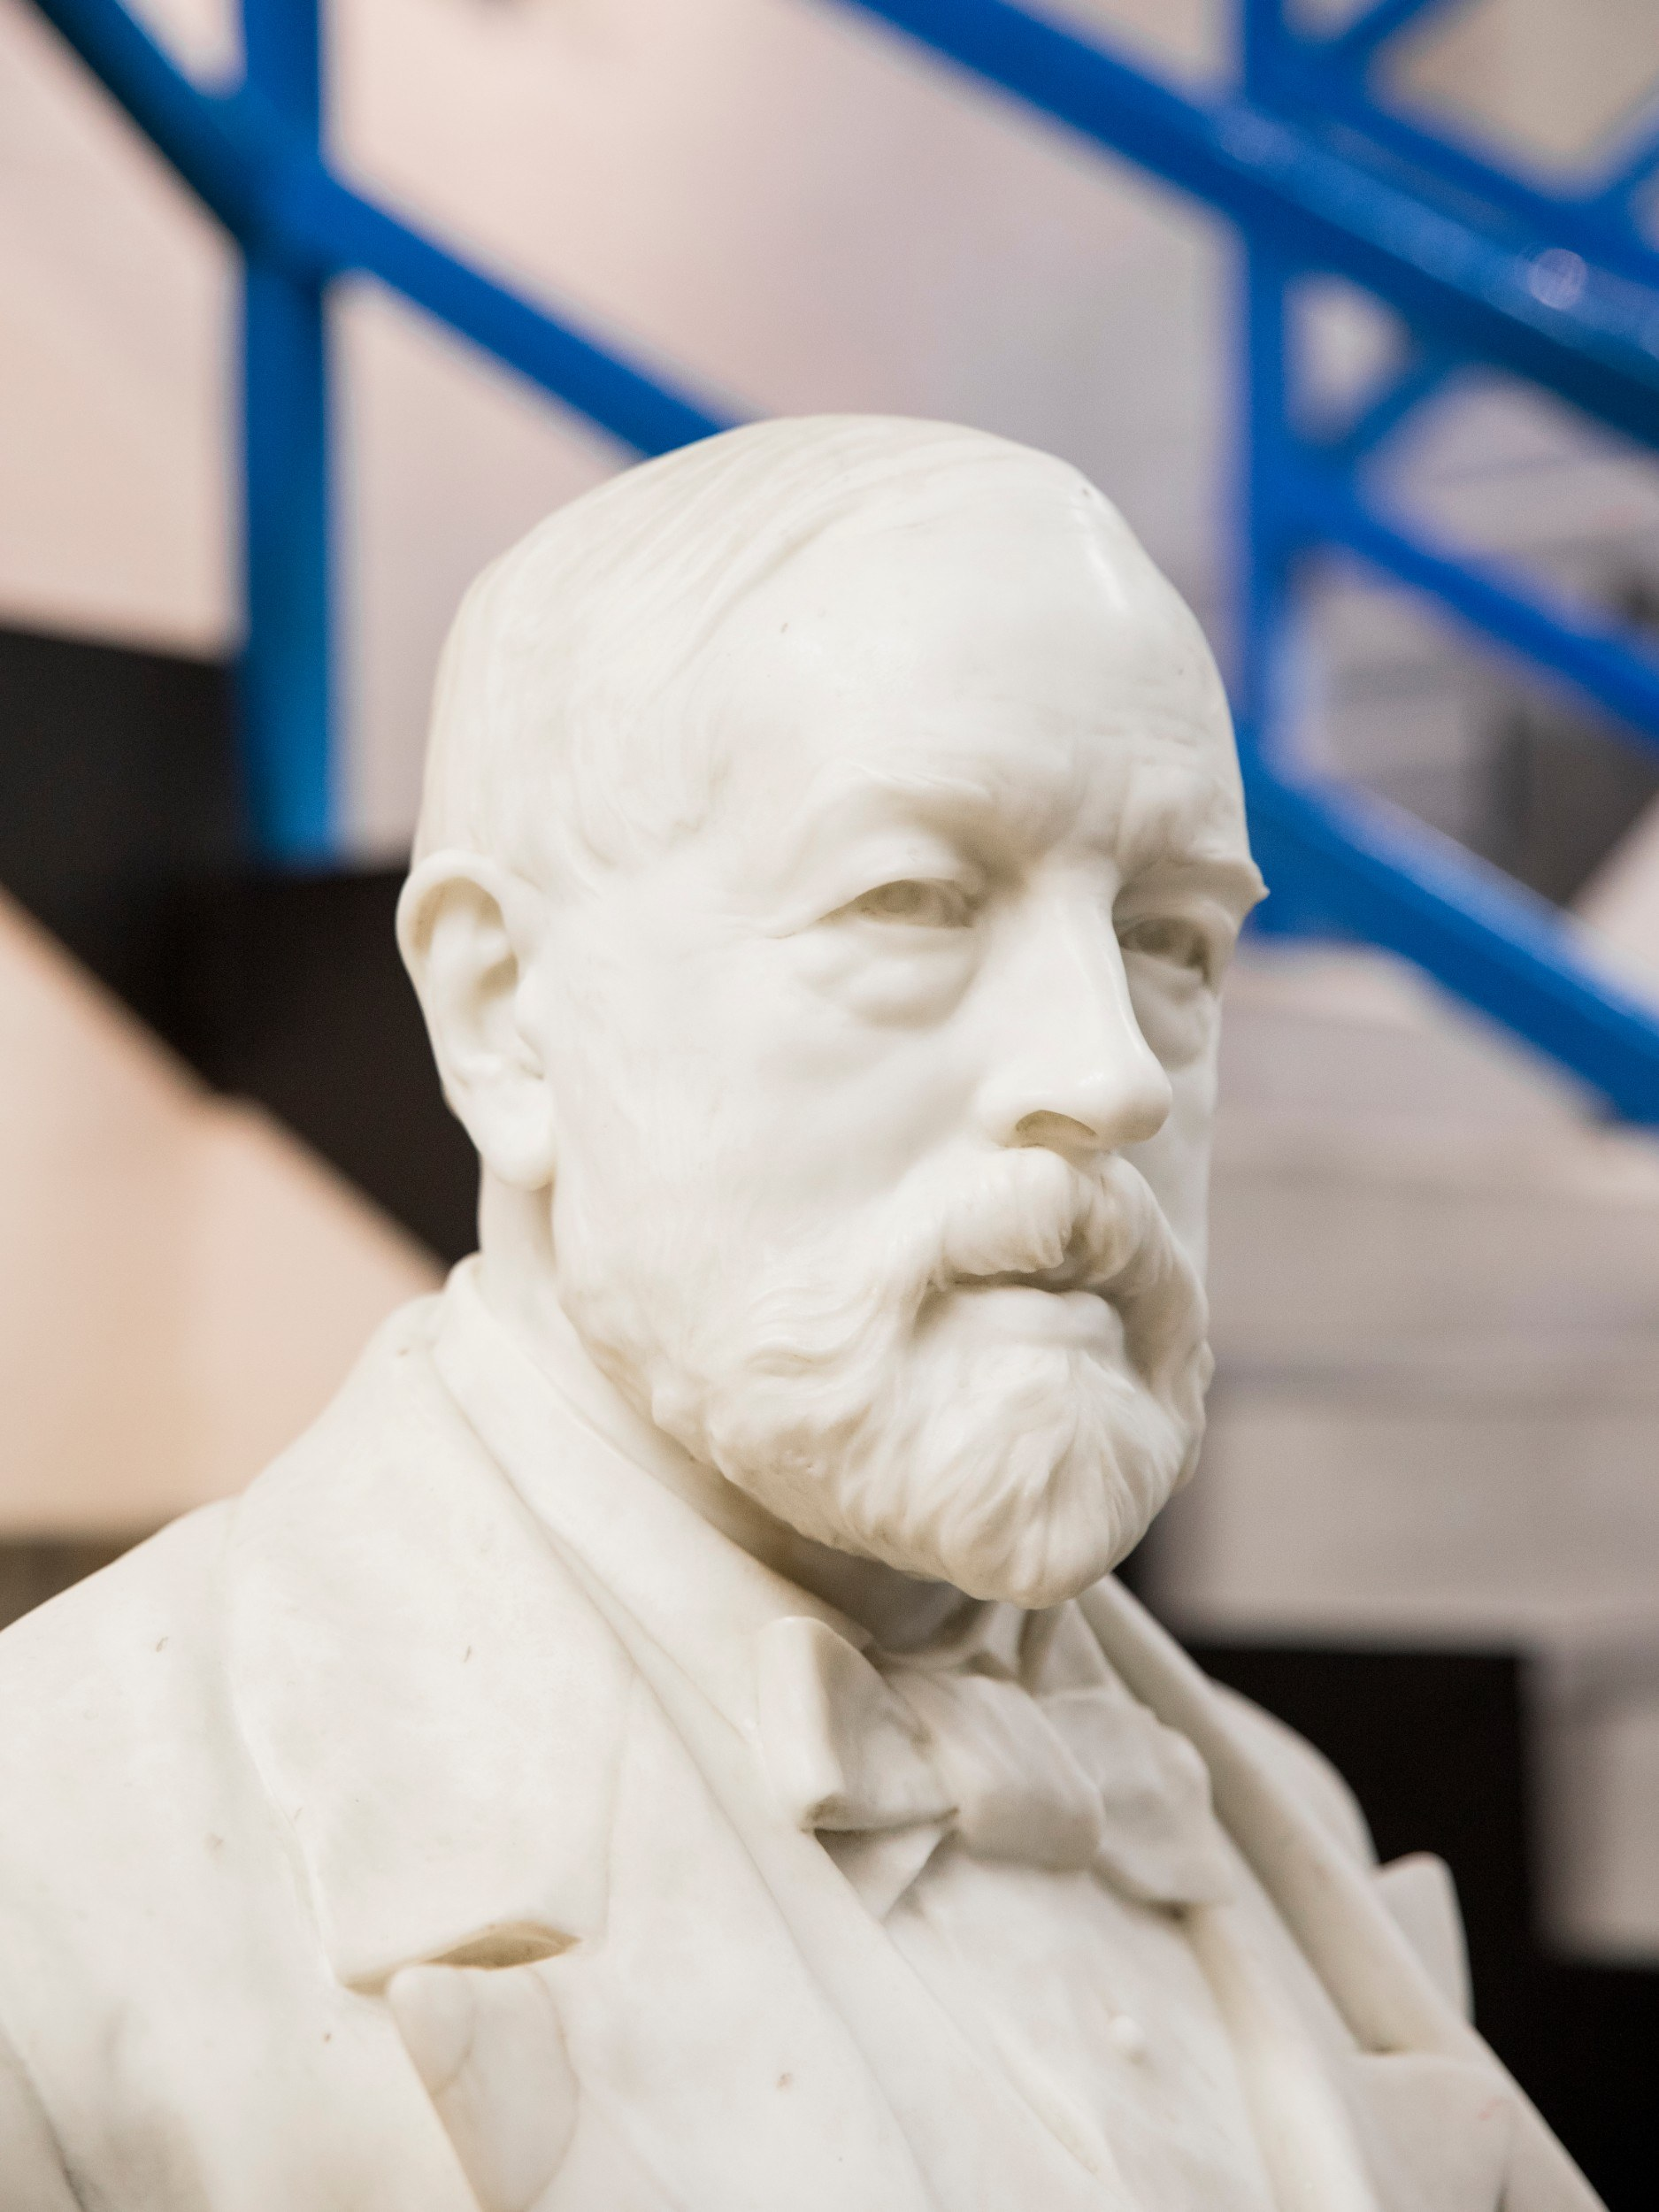 Bust of man with a beard, made of a white material